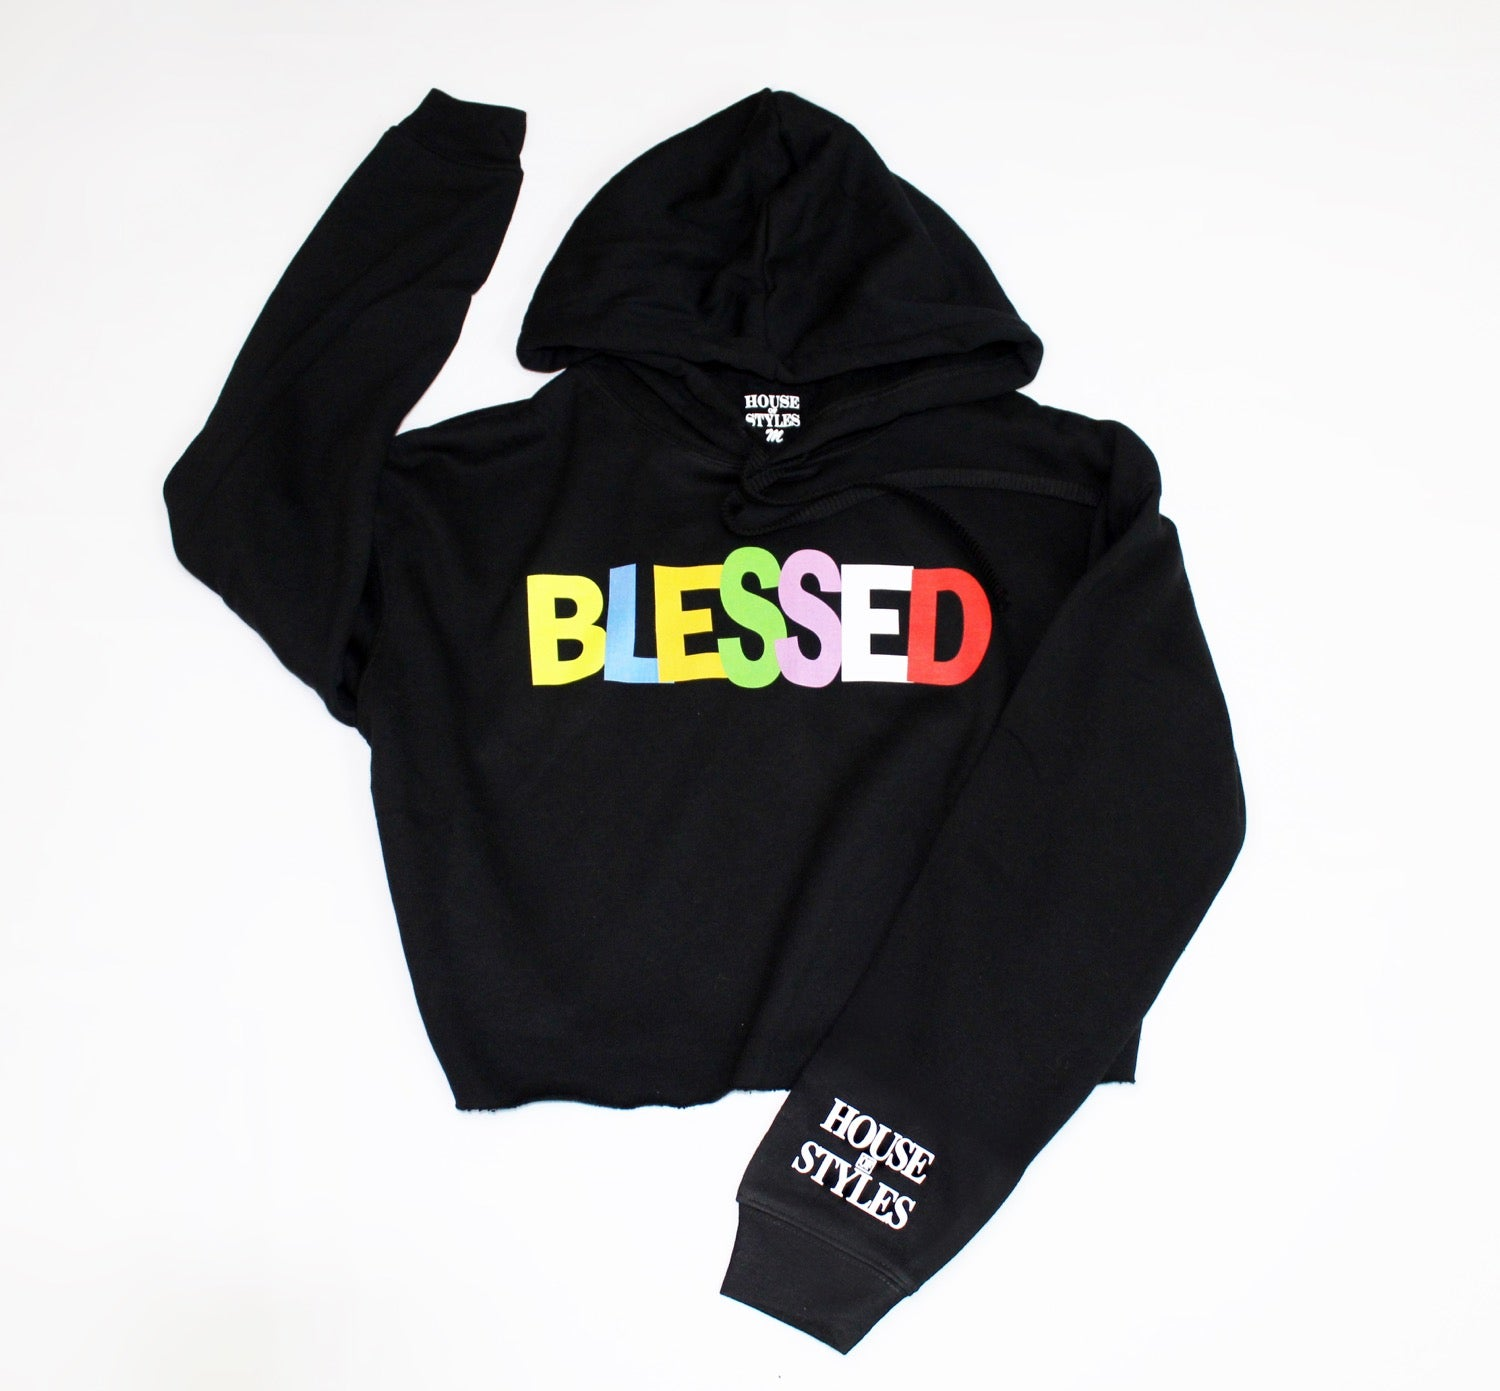 BLESSED CROP TOP COLORWAY HOODIE